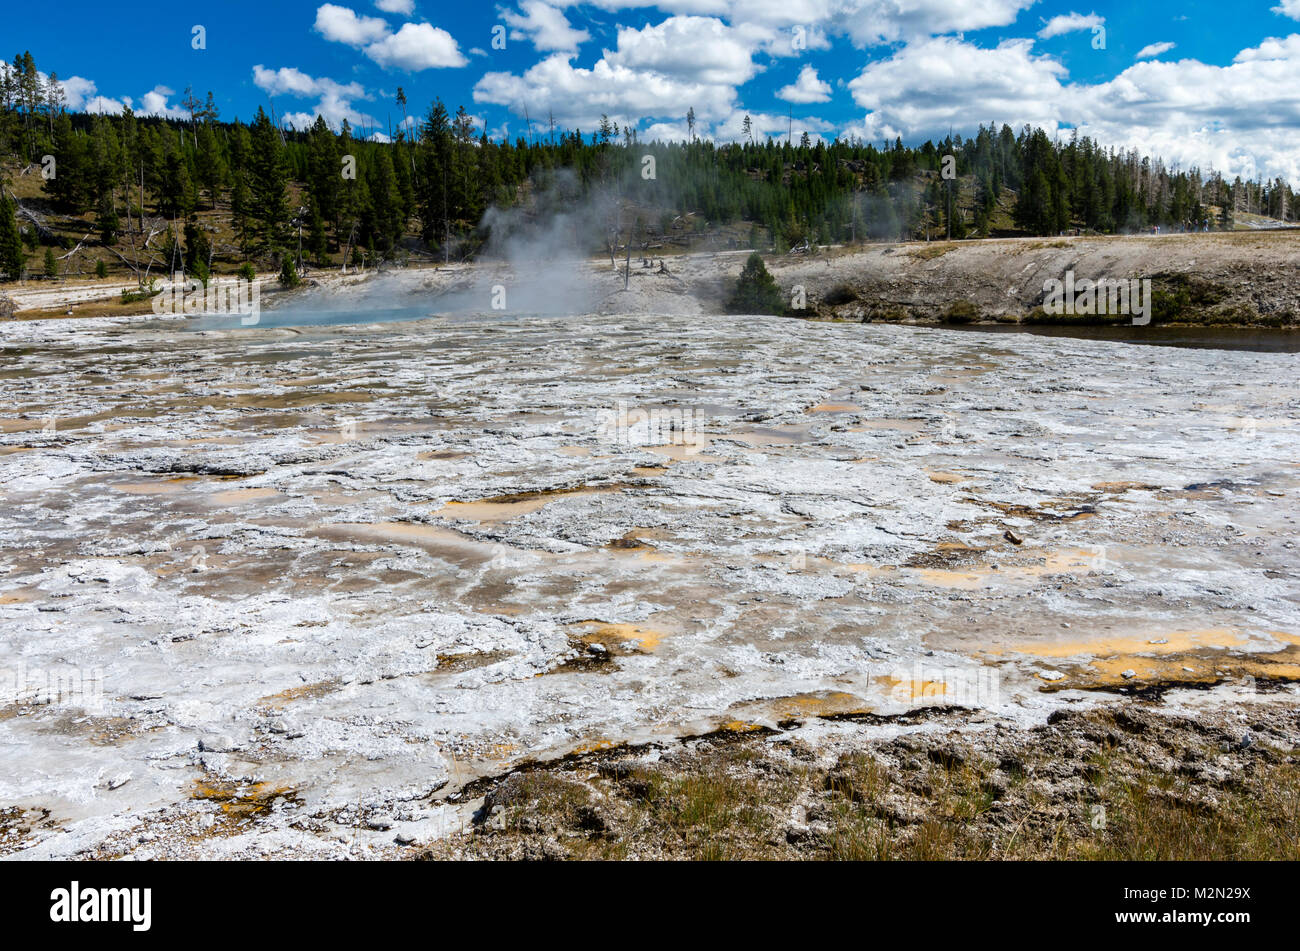 Geyserite flow from Oblong Geyser in the Upper Geyser Basin.  Yellowstone National Park, Wyoming, USA - Stock Image